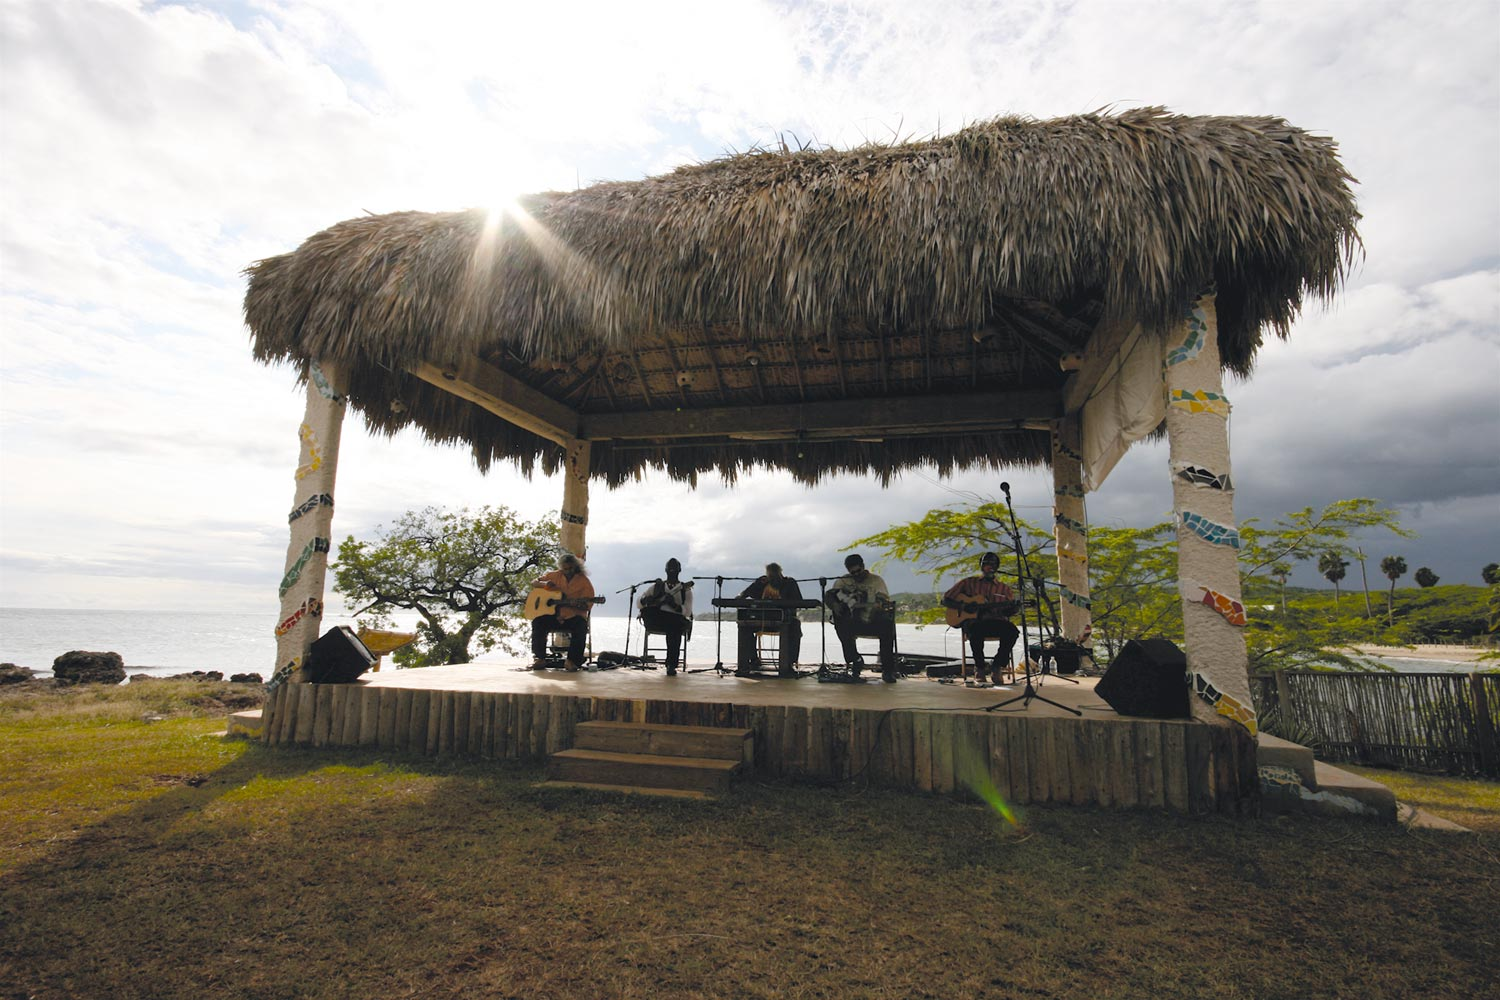 A Sunday afternoon performance on the main Calabash stage. Photograph by Georgia Popplewell